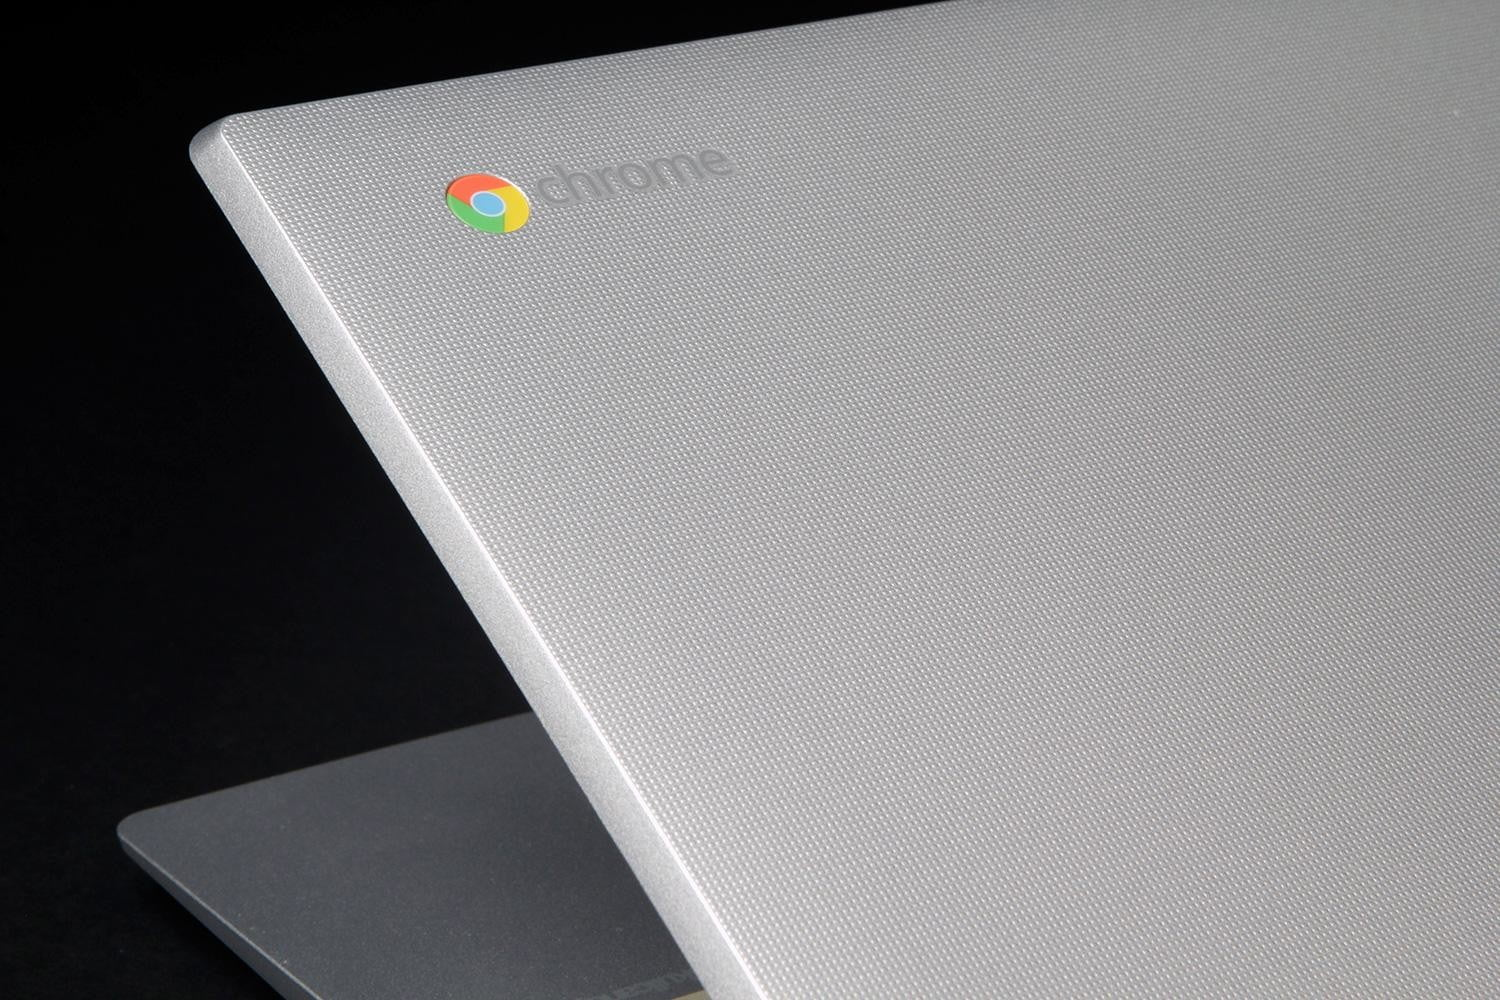 Restore Chromebook Bios